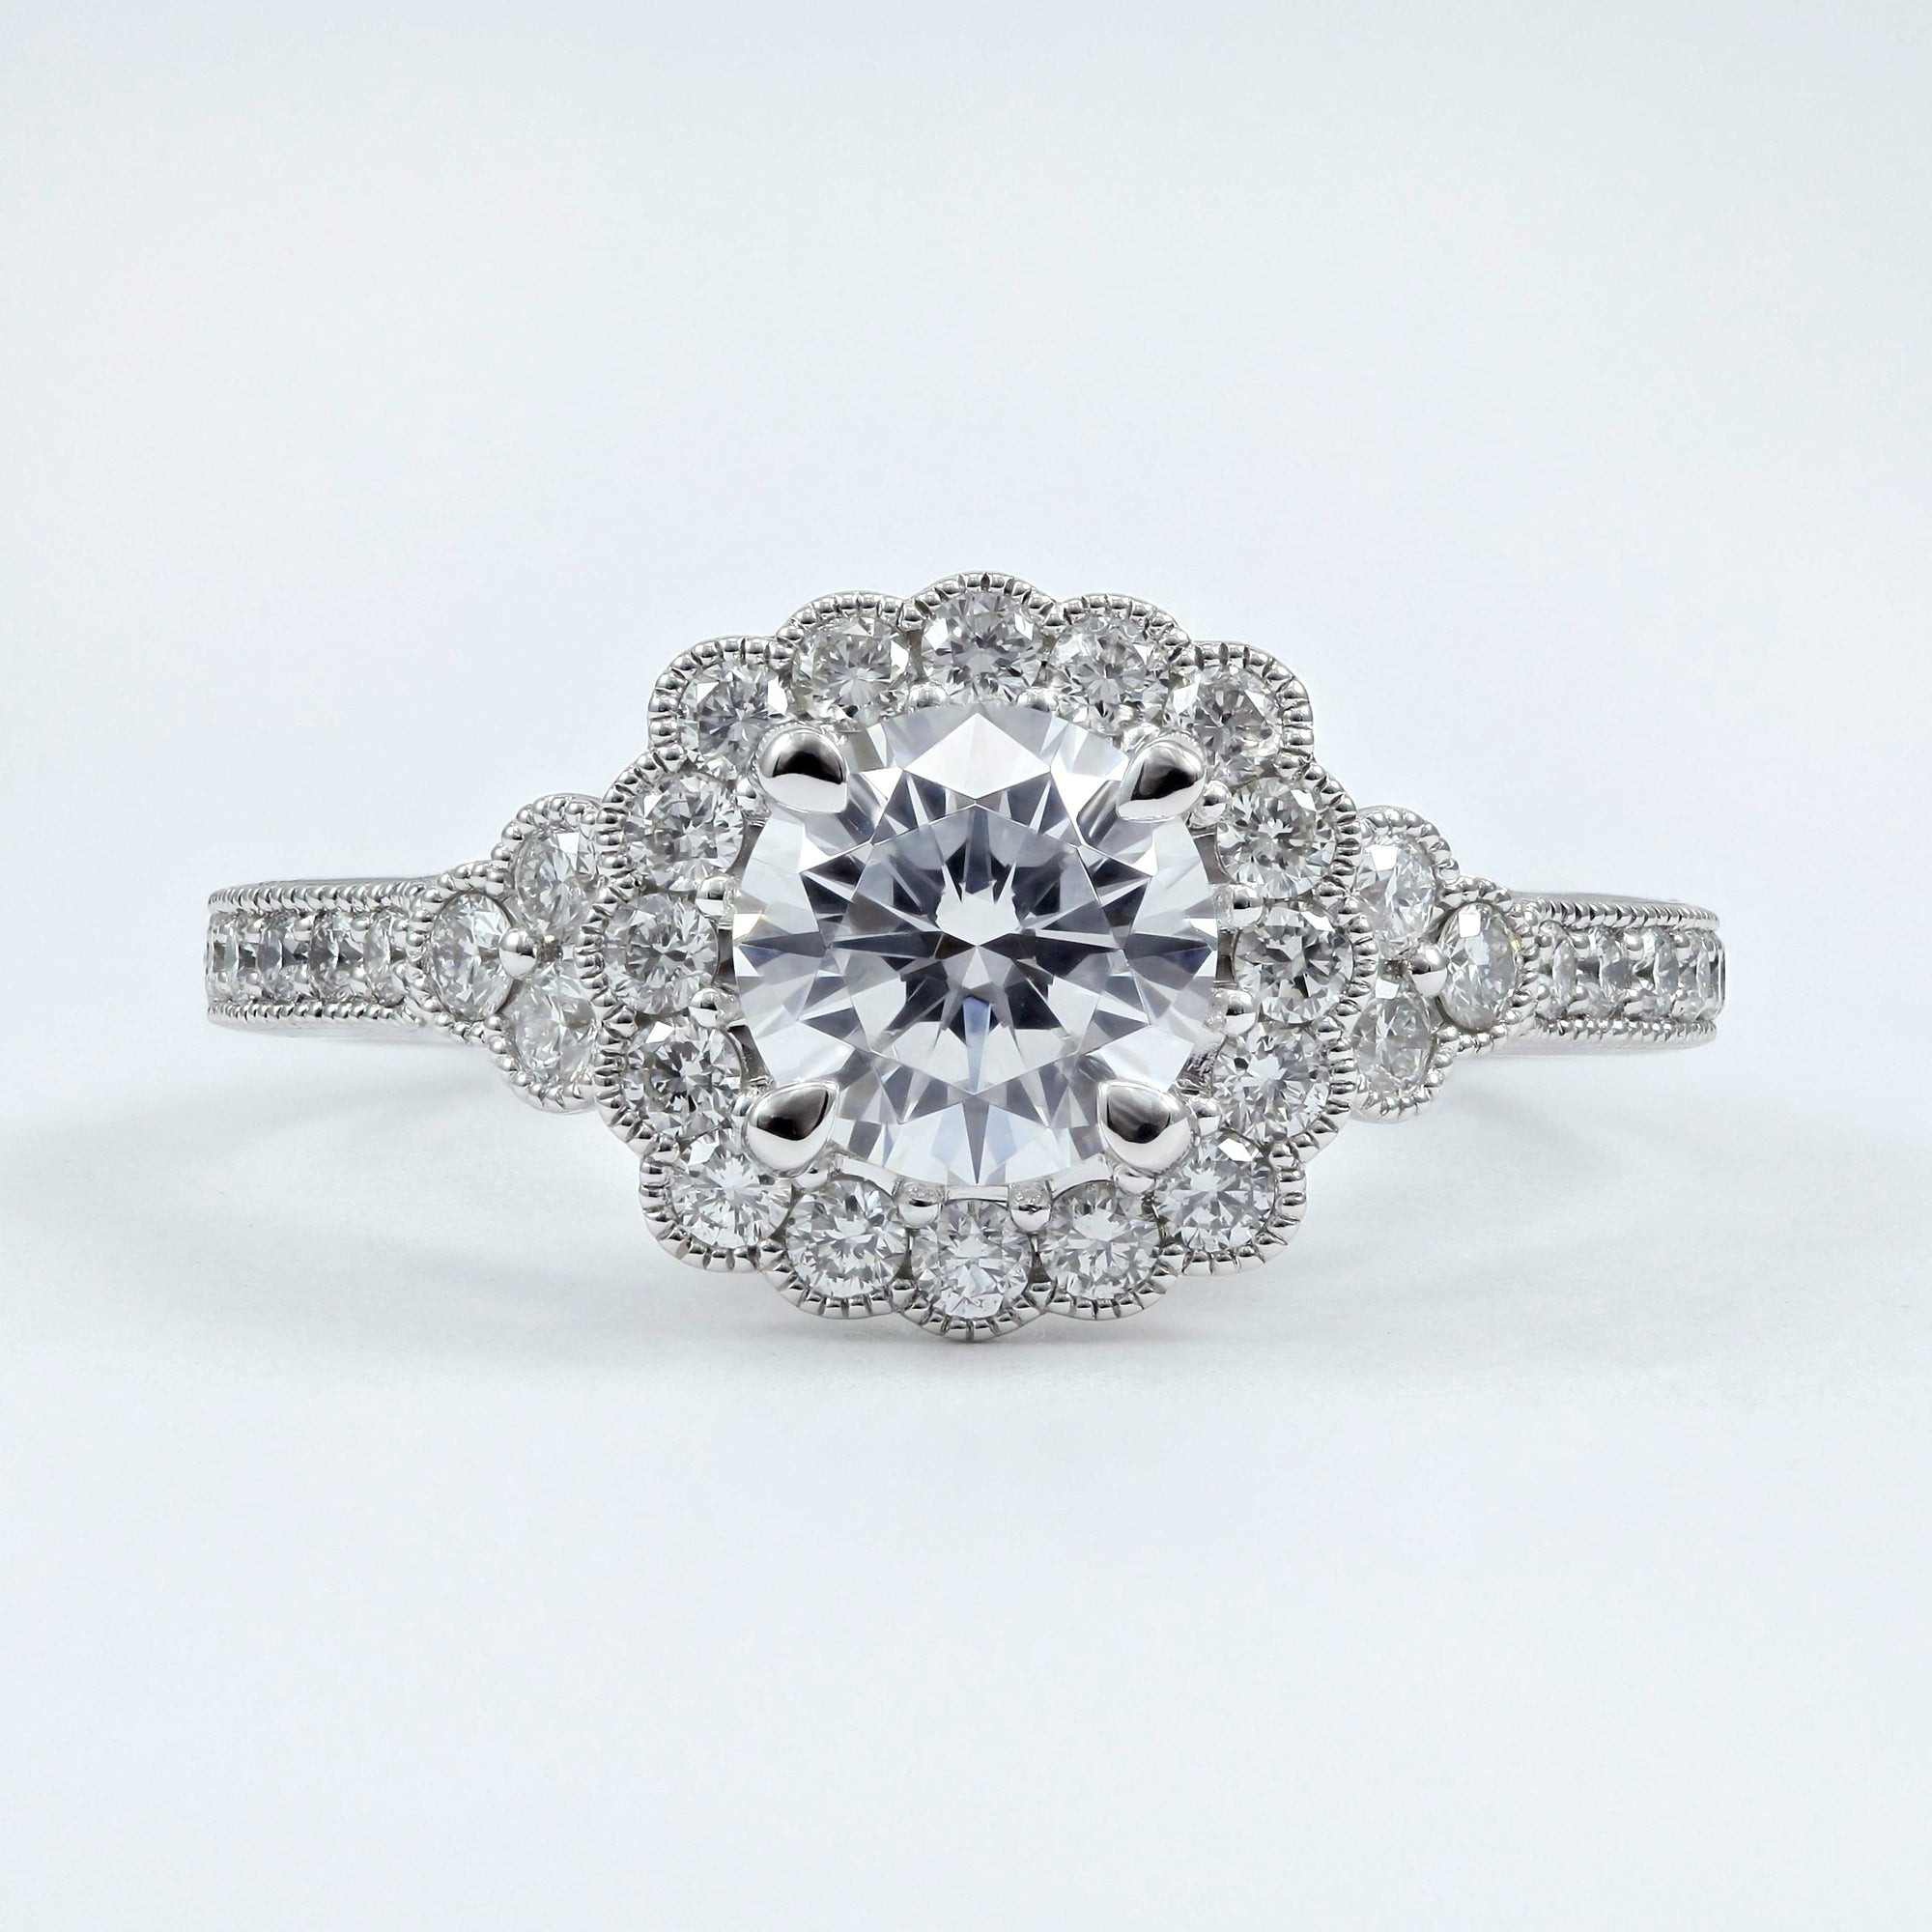 Fana 14K White Gold Scalloped Halo Ring with Cathedral, Bridge and Peekaboo Diamond Set